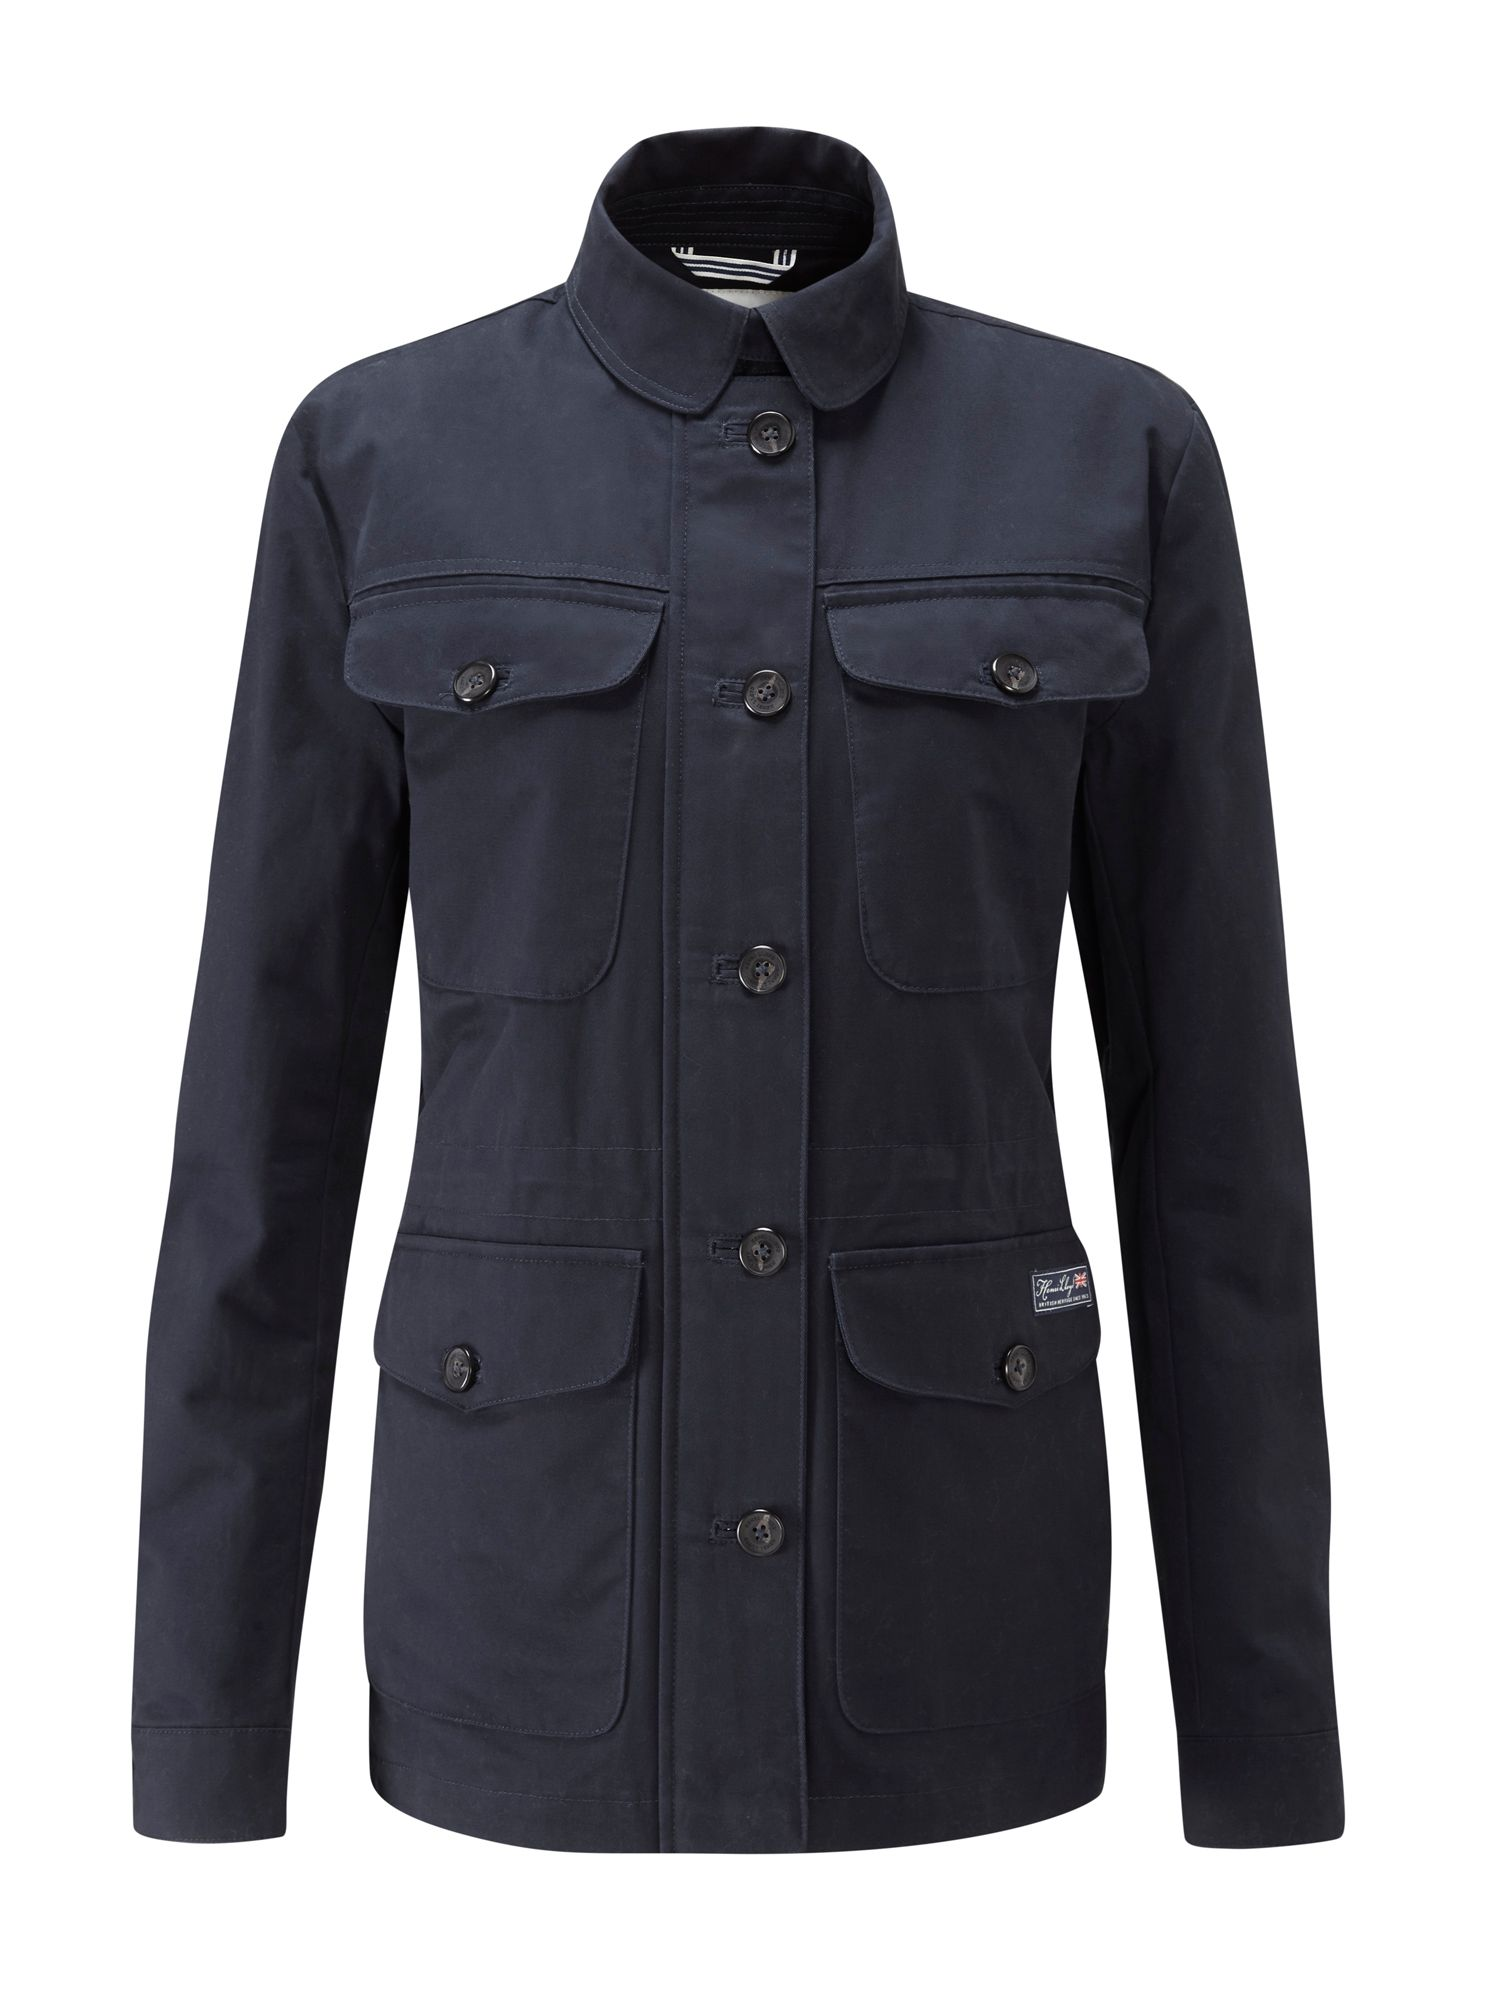 Henri Lloyd Roanna Jacket, Blue